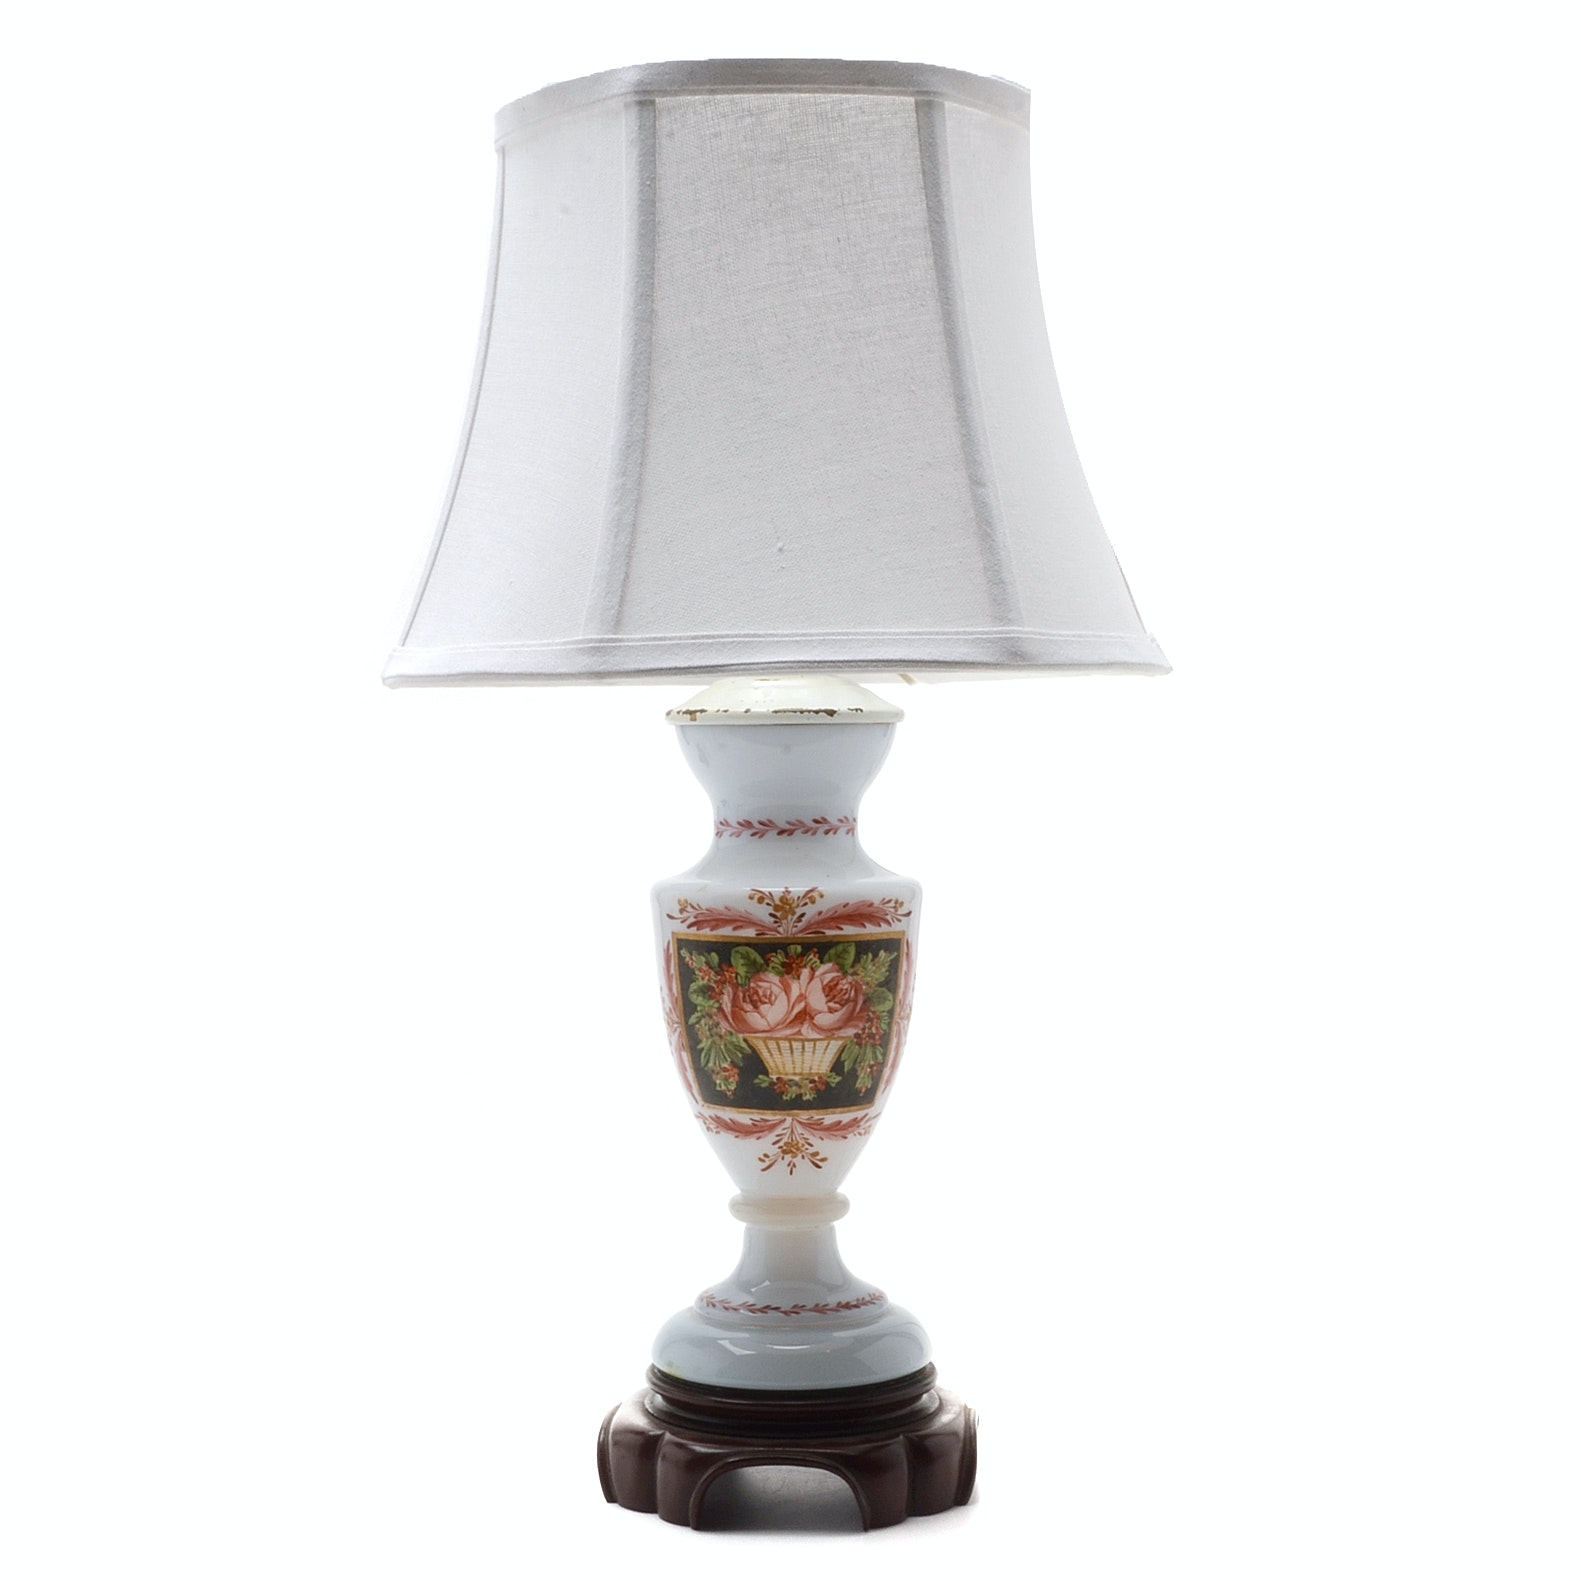 Hand Decorated Lamp